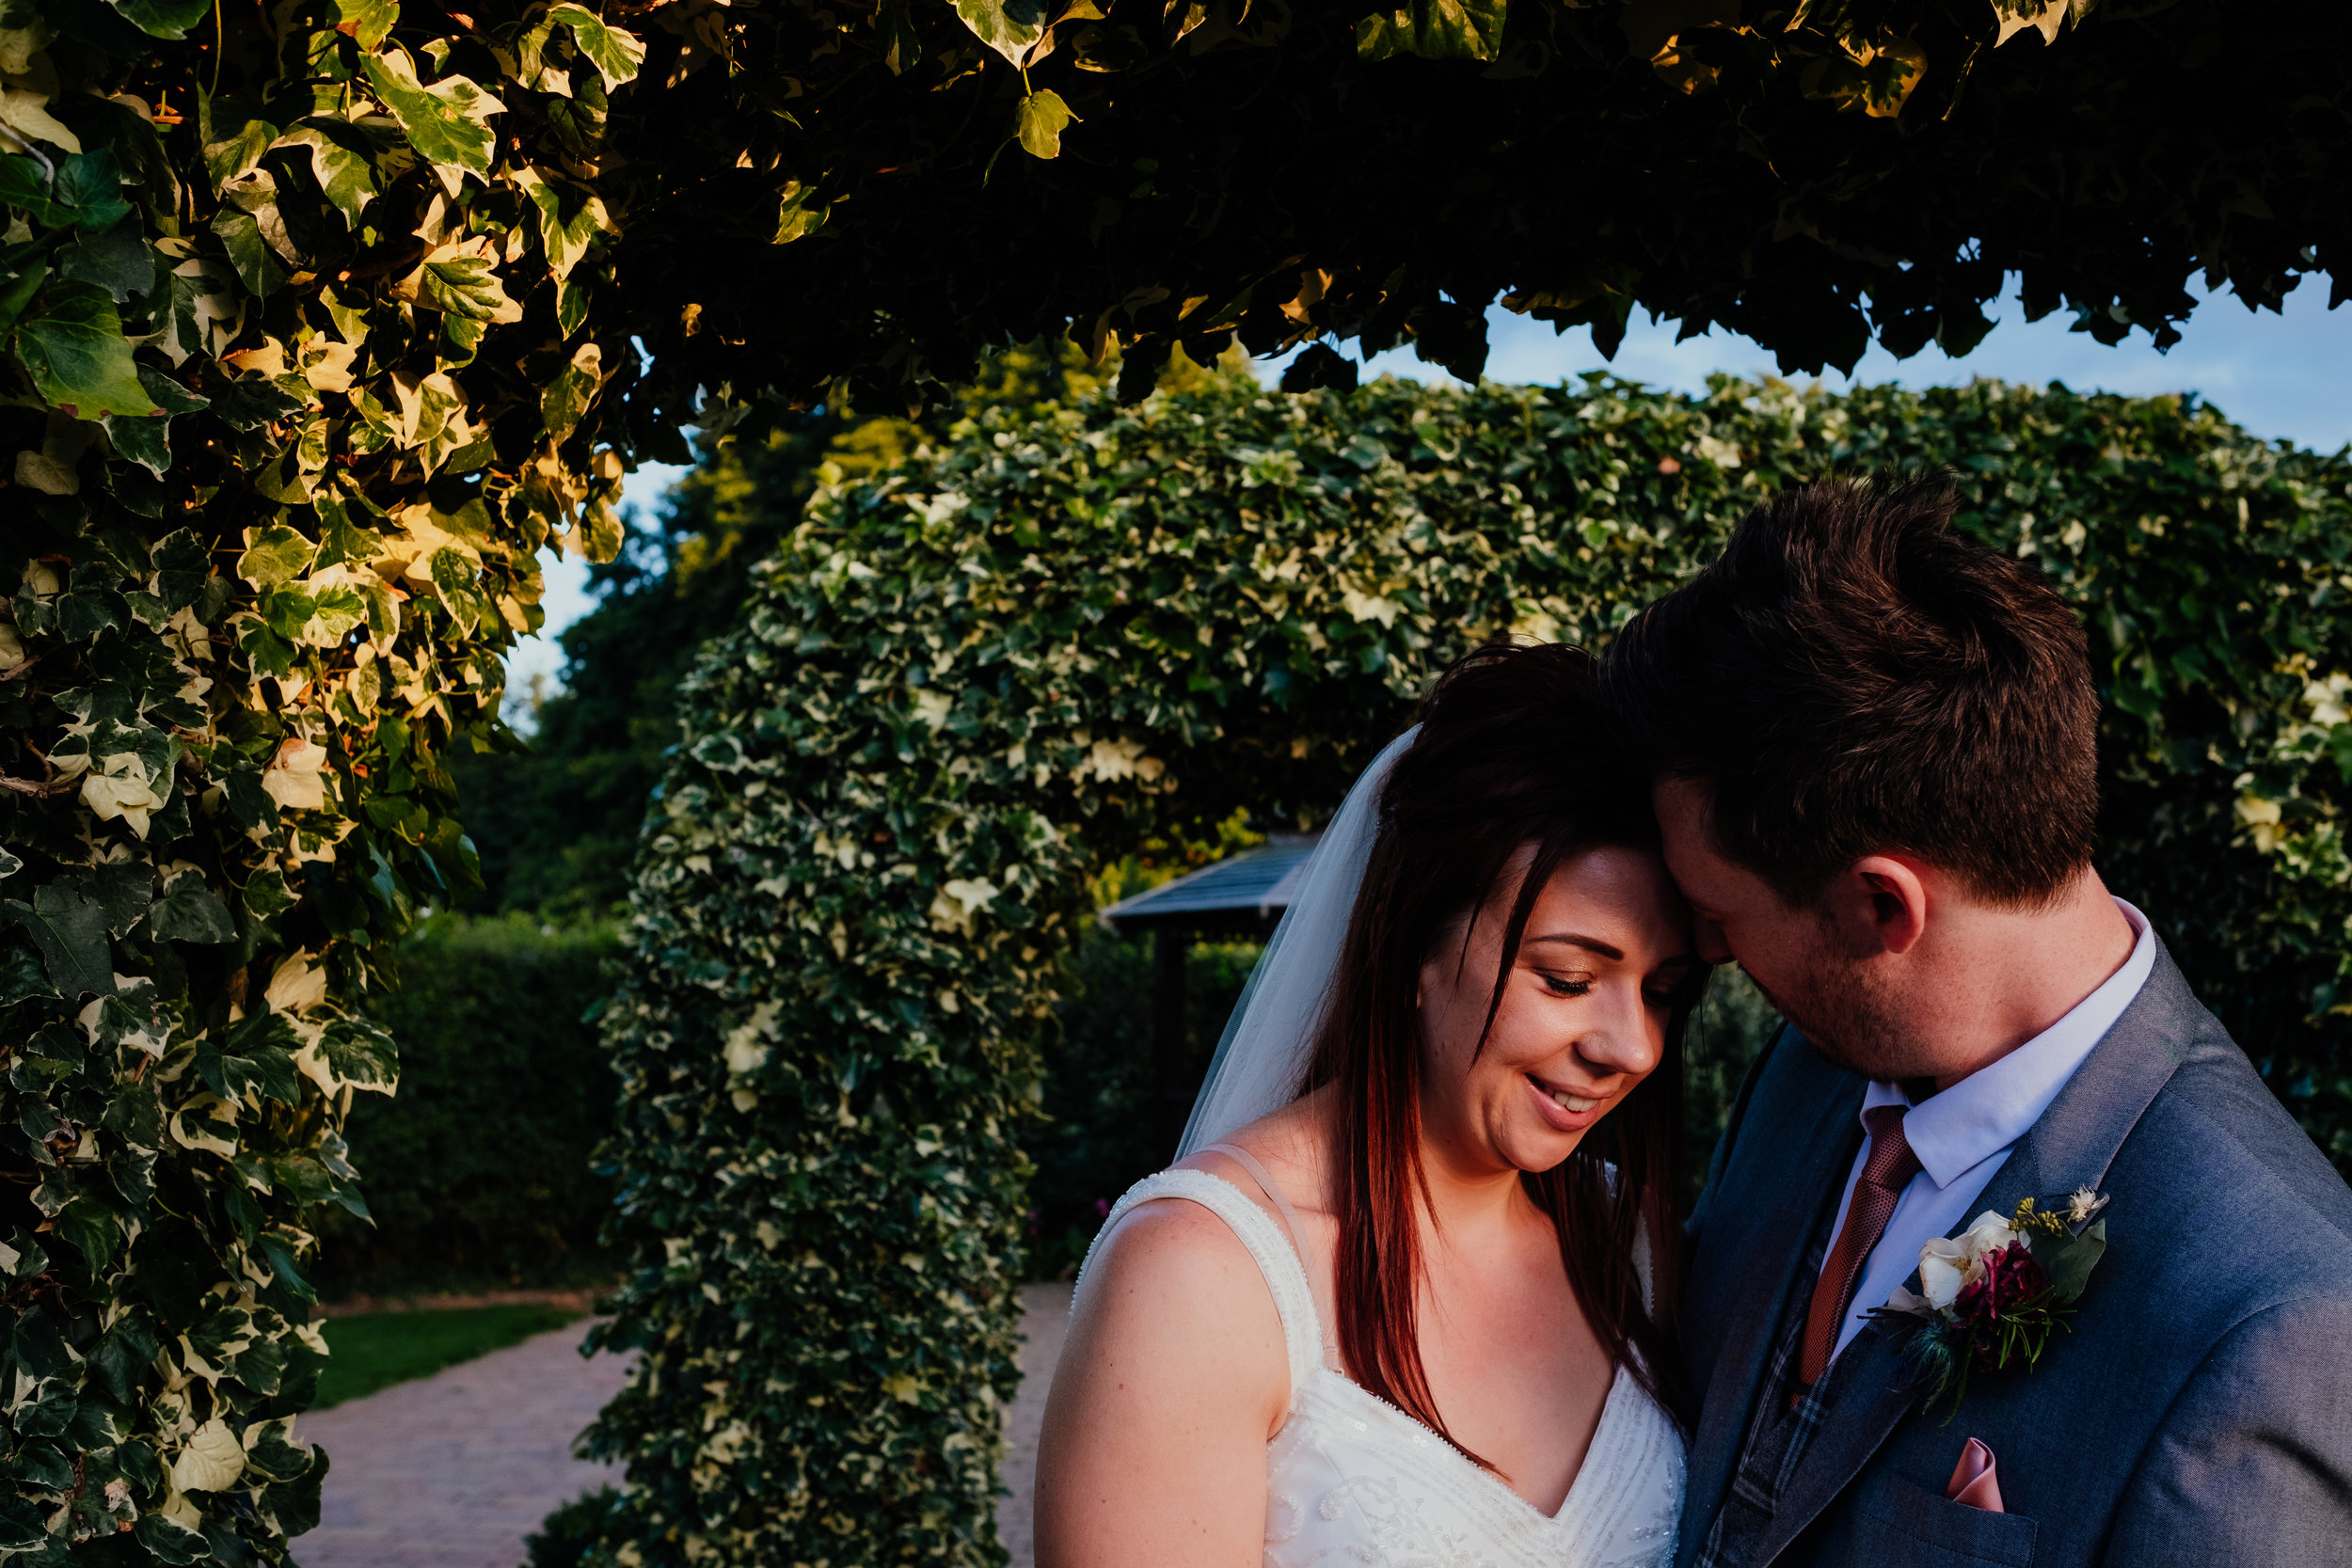 Bride and groom smiling at each other during sunset at Tewin Bury Farm wedding